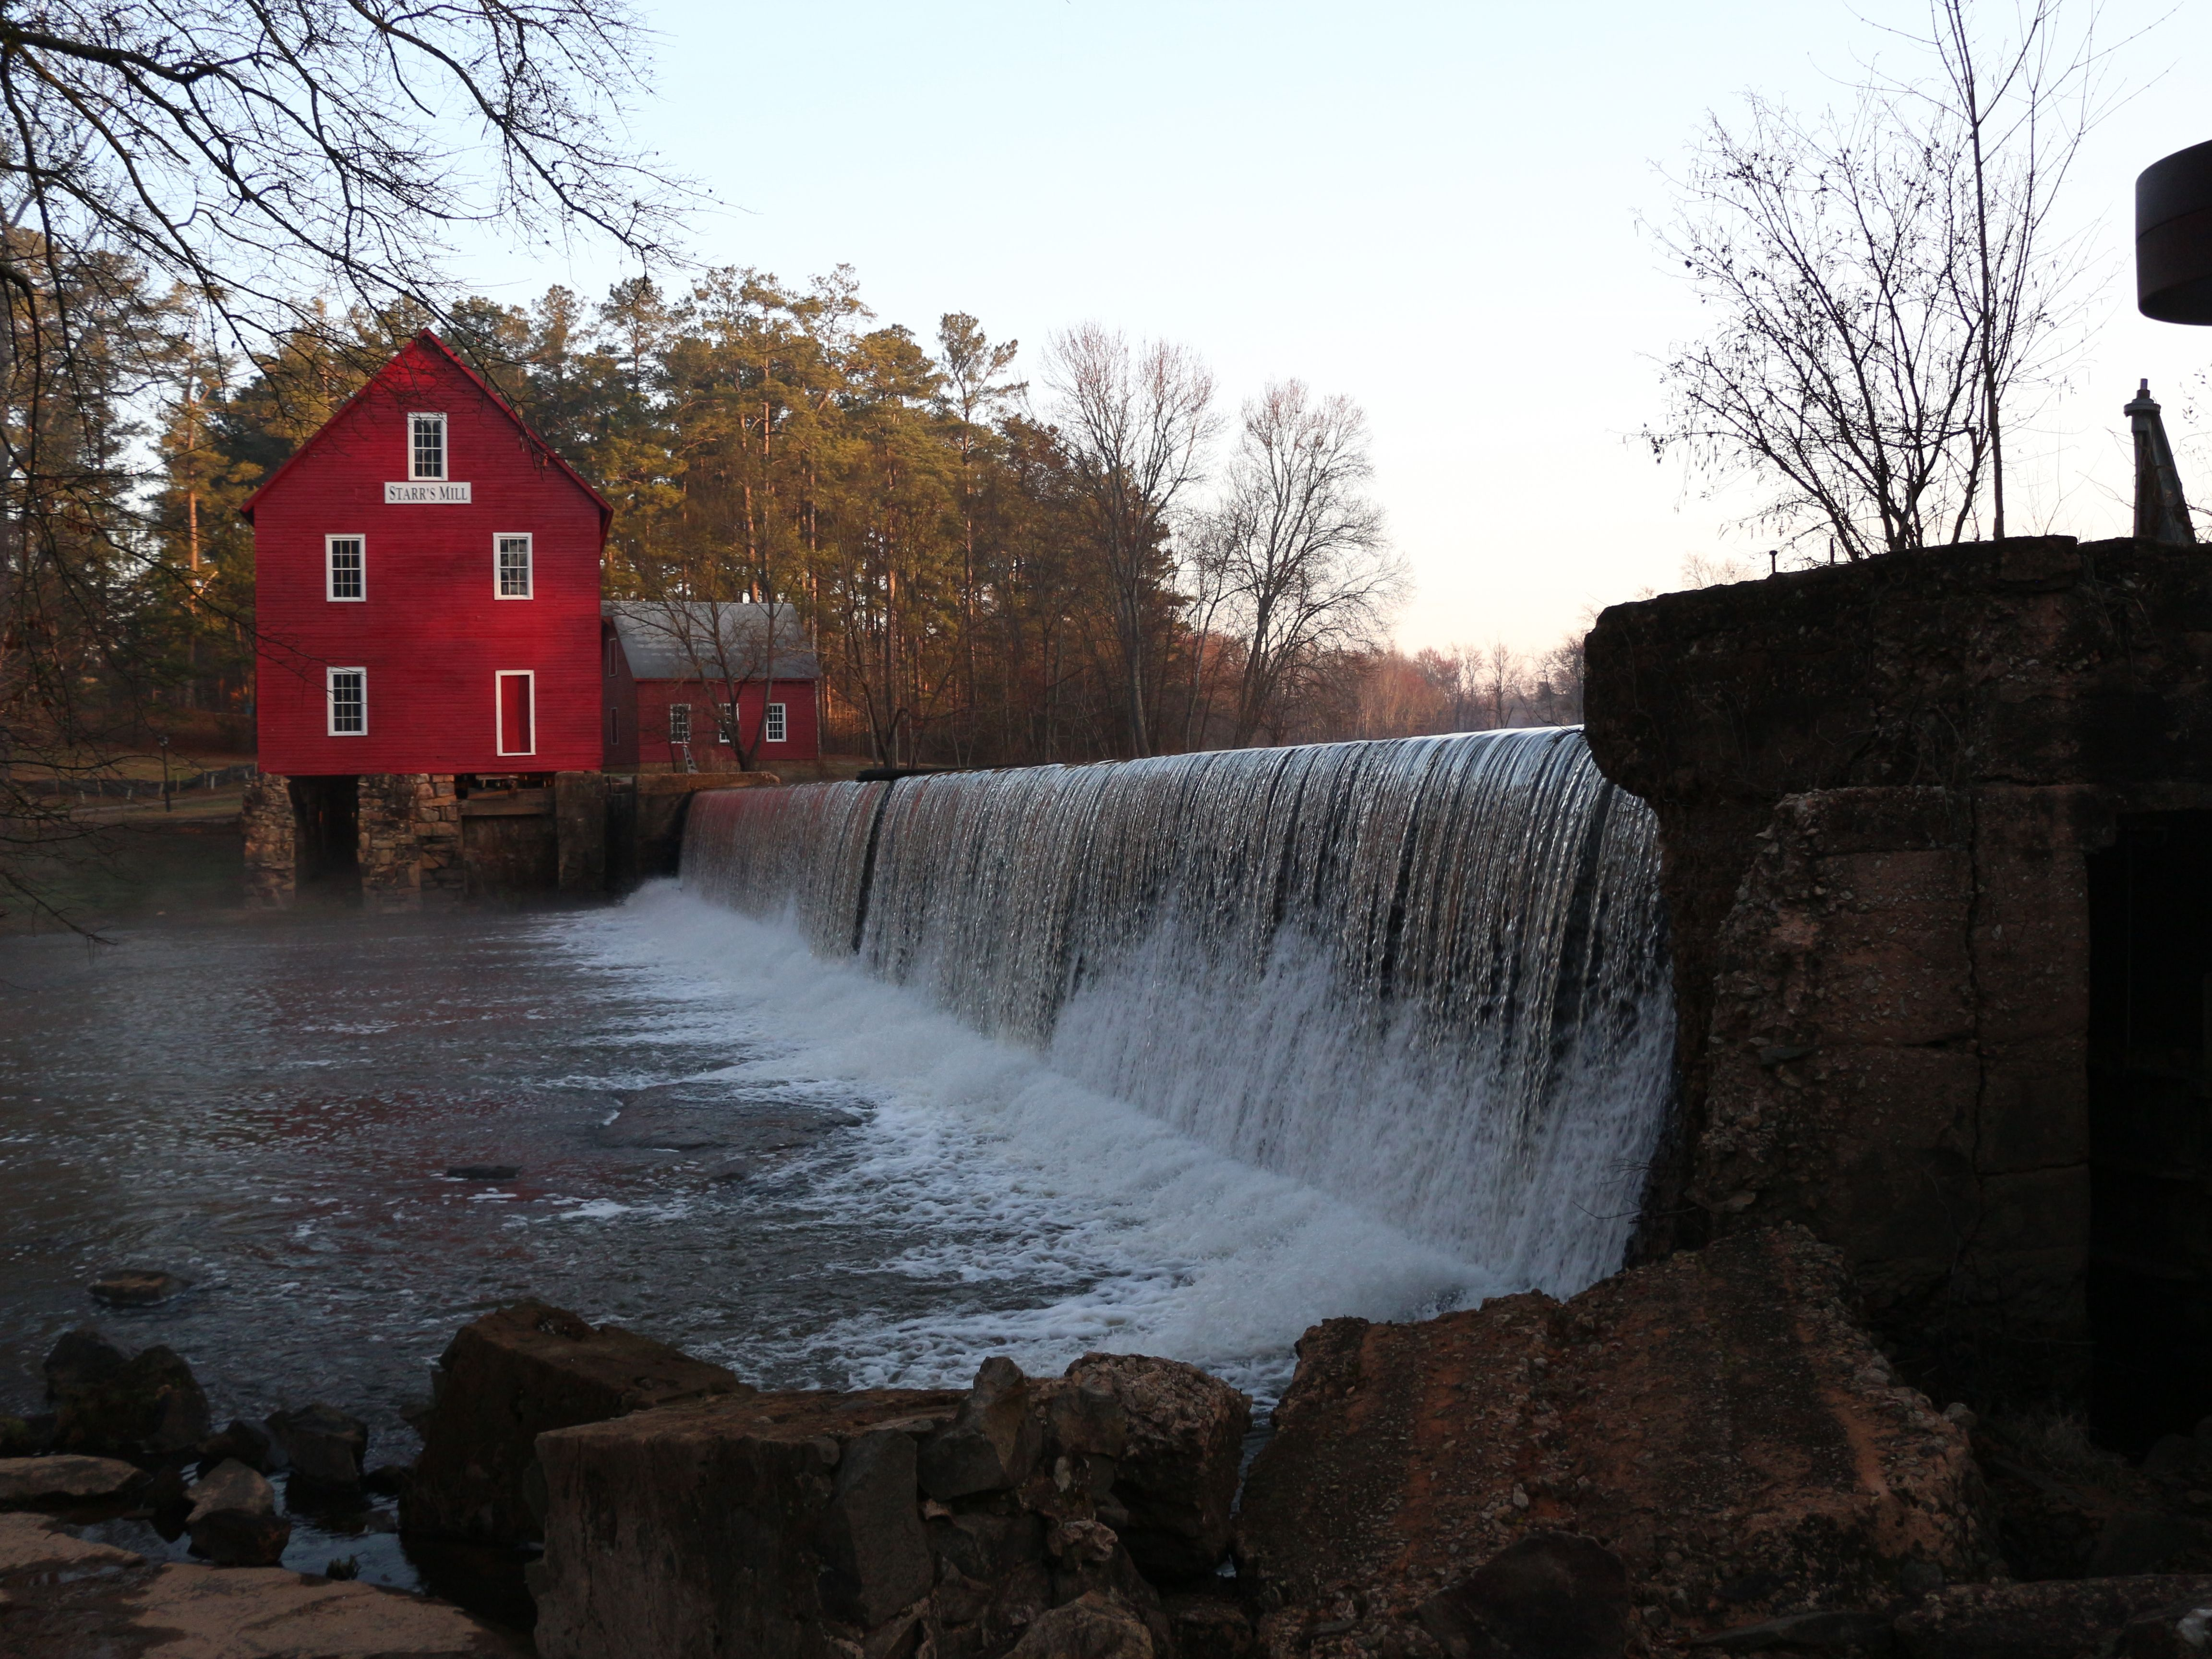 Starr S Mill In Senoia Ga This Is An Old Grist Mill Beautiful